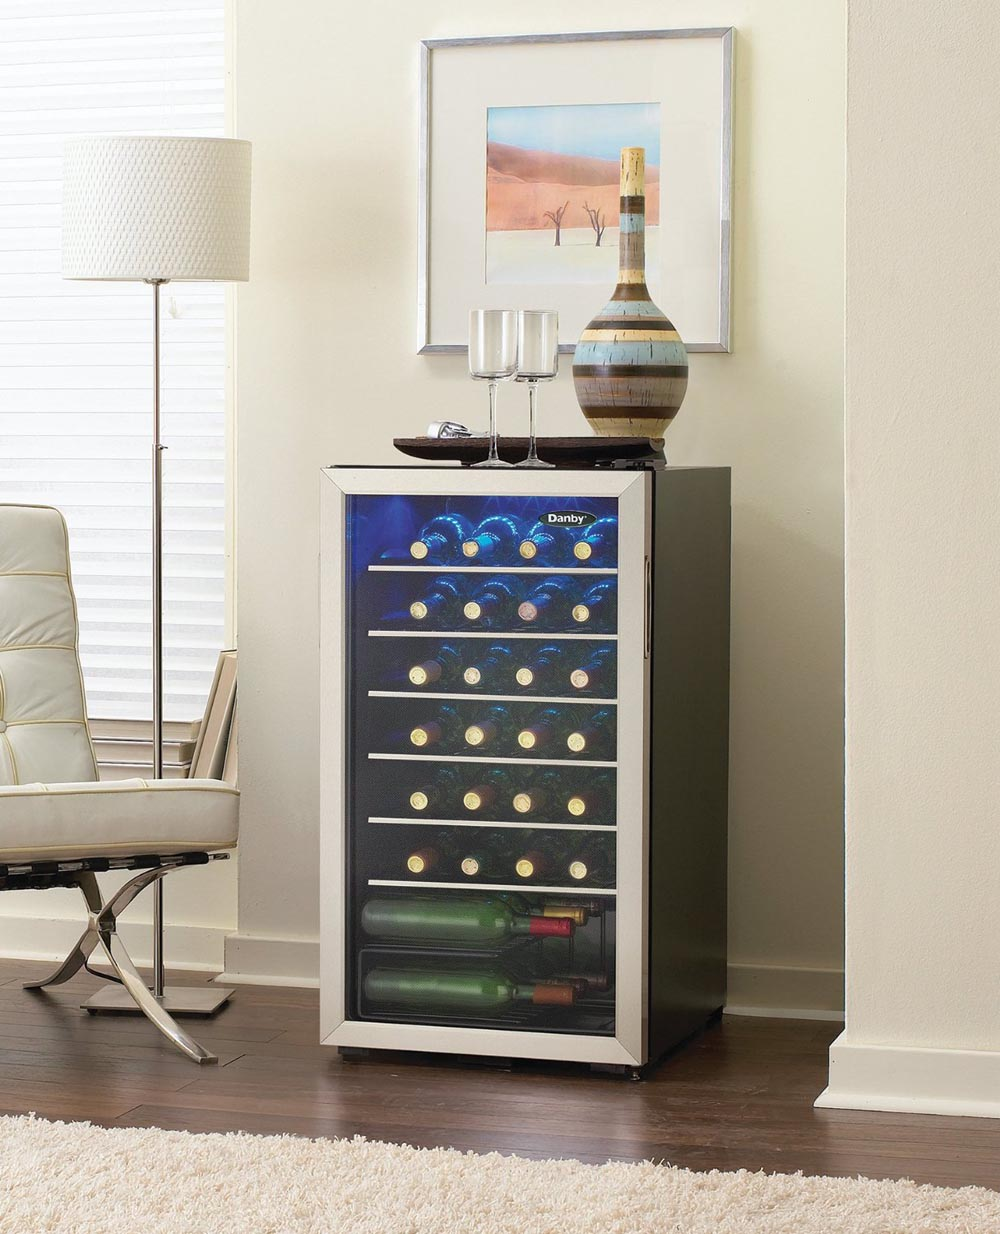 72 Back Bar Refrigerator C Bb72g additionally Norp13 1dfreeze additionally Glass Shelf Brackets also 27144 Money Making Tip Ebay Sellers Making Ste unk L s together with Test. on stainless steel led liquor shelves